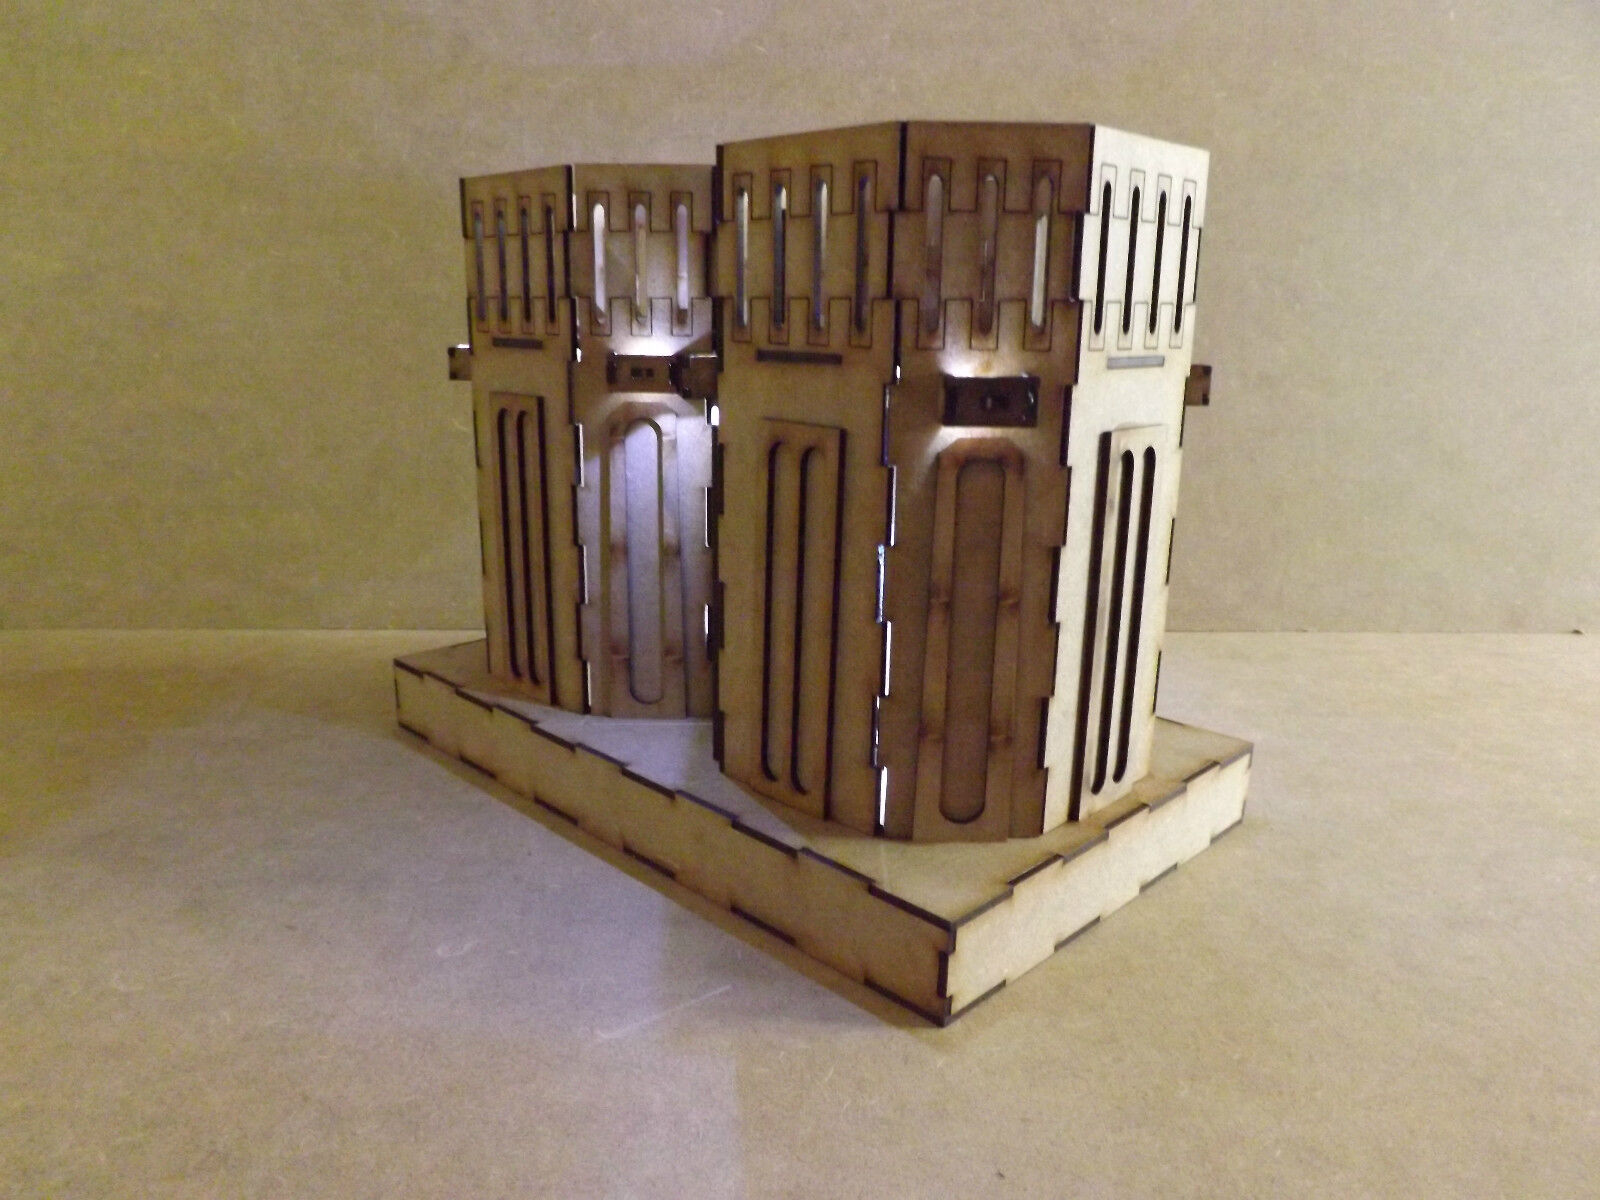 Reactor Cores Led MDF warhammer 40k/wargame/infinity building/terrain  #63472E 1600x1200